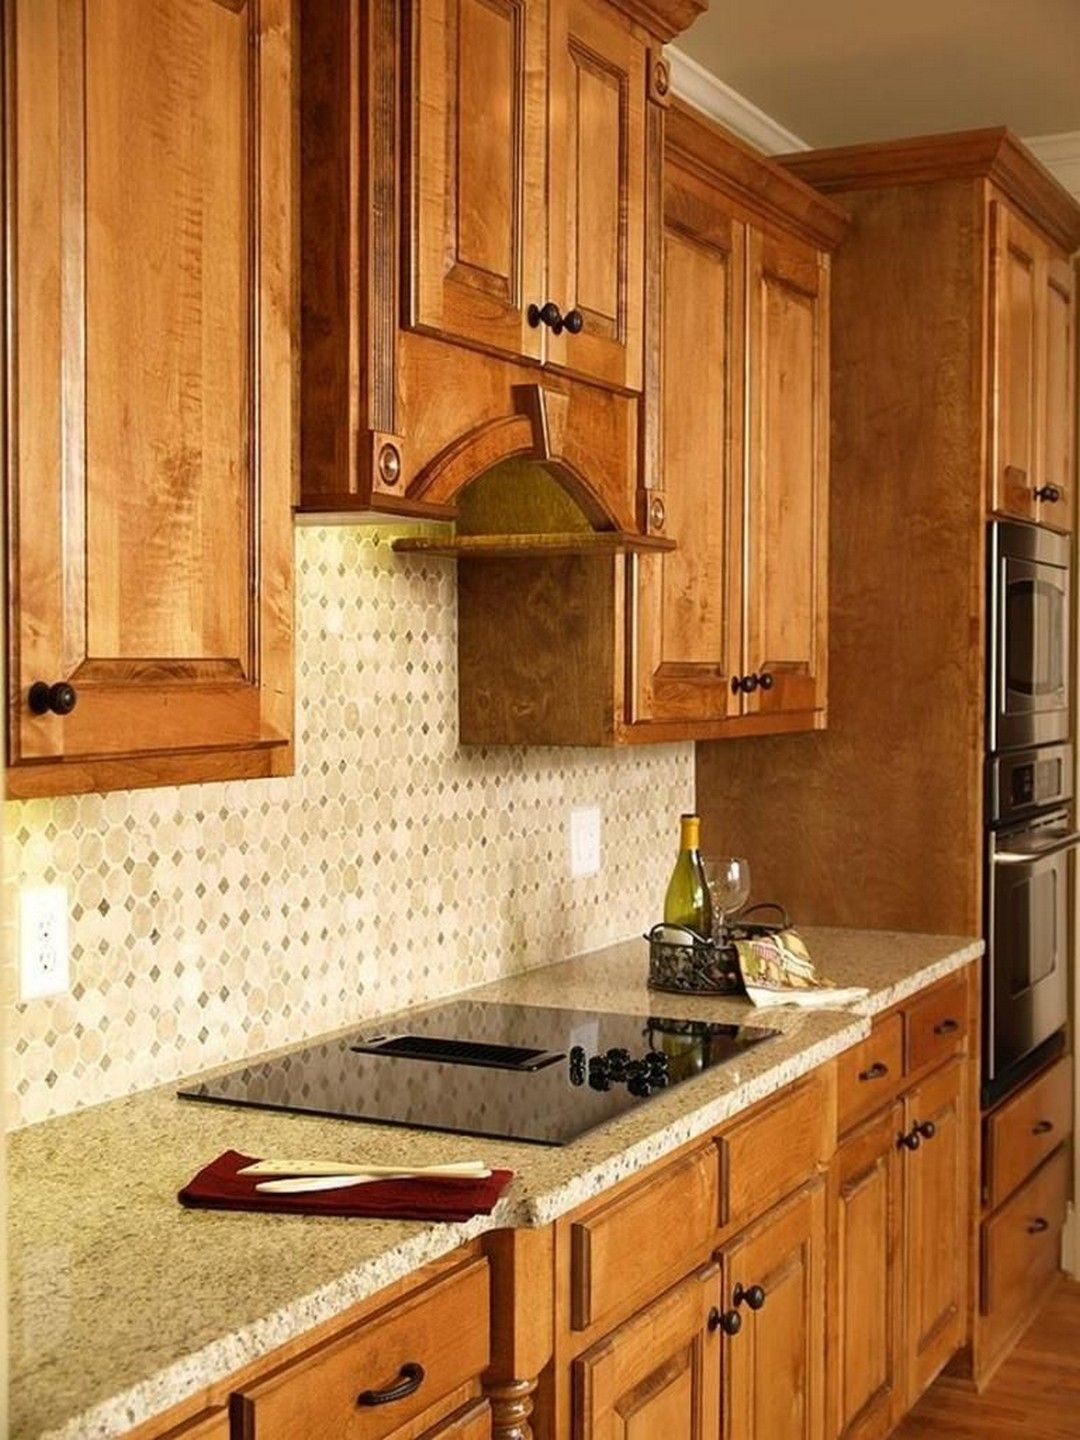 29 Fantastic Kitchen Backsplash Ideas With Oak Cabinets Https Kitchendecorpad Com 2018 10 18 29 Trendy Kitchen Backsplash Honey Oak Cabinets Kitchen Flooring